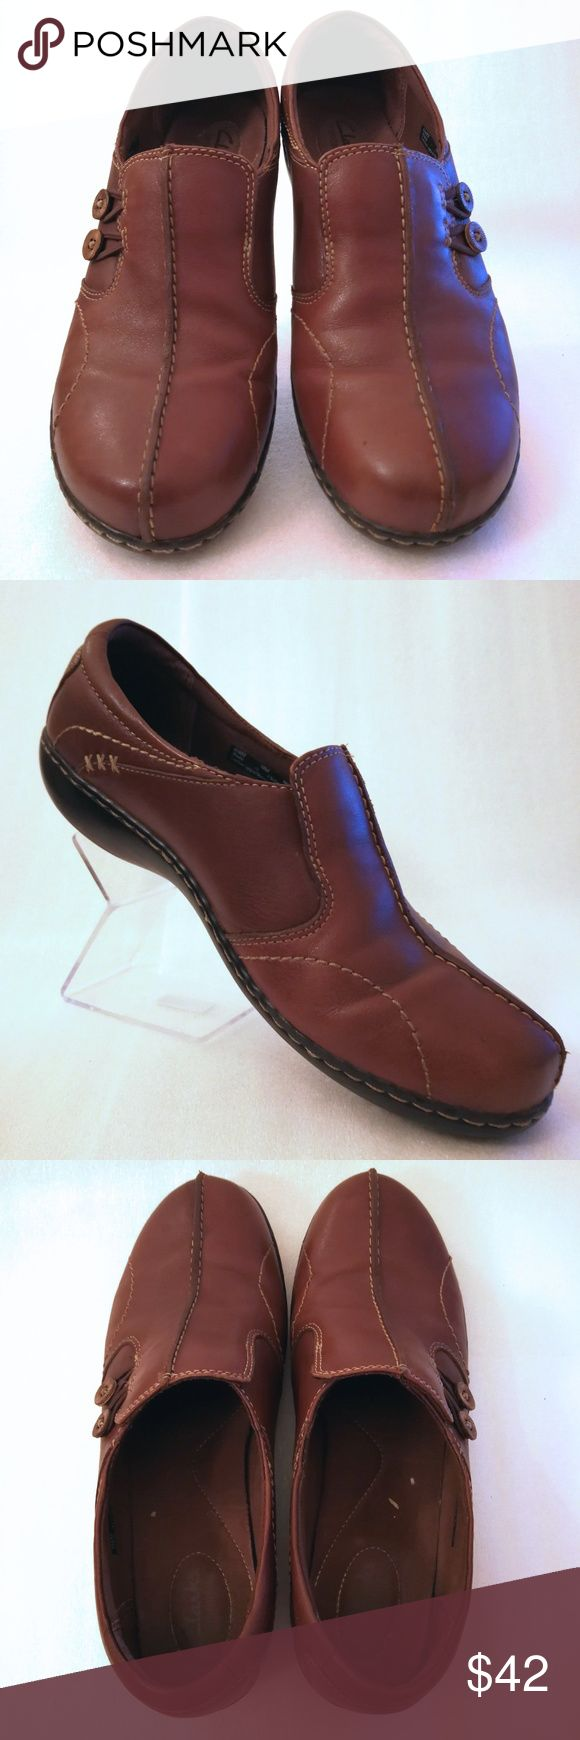 Women's 10M Clarks Brown Leather Shoes For sale is a pair of Clarks in excellent condition.   Size: 10M  I will ship your shoes within 24 hours  Thank you Clarks Shoes Flats & Loafers